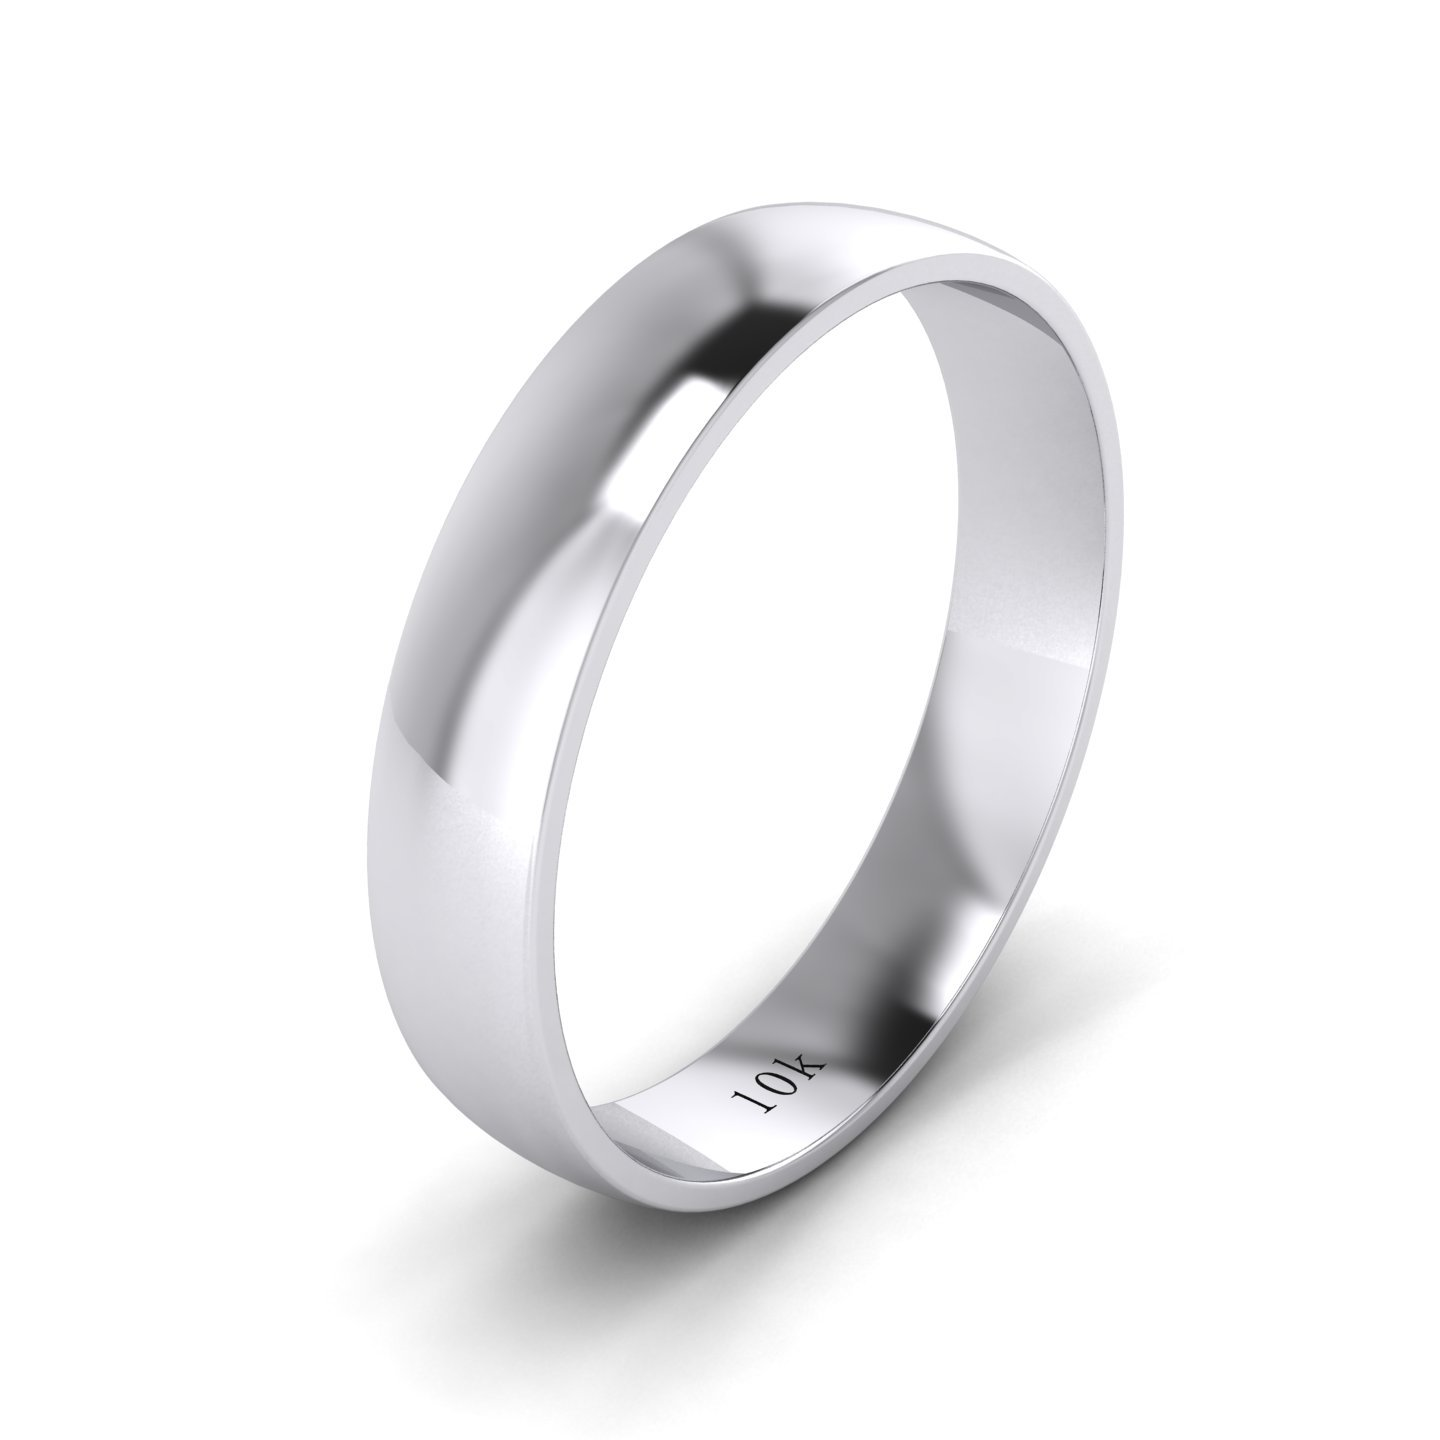 Unisex 10k White Gold 4mm Light Court Shape Comfort Fit Polished Wedding Ring Plain Band (6)